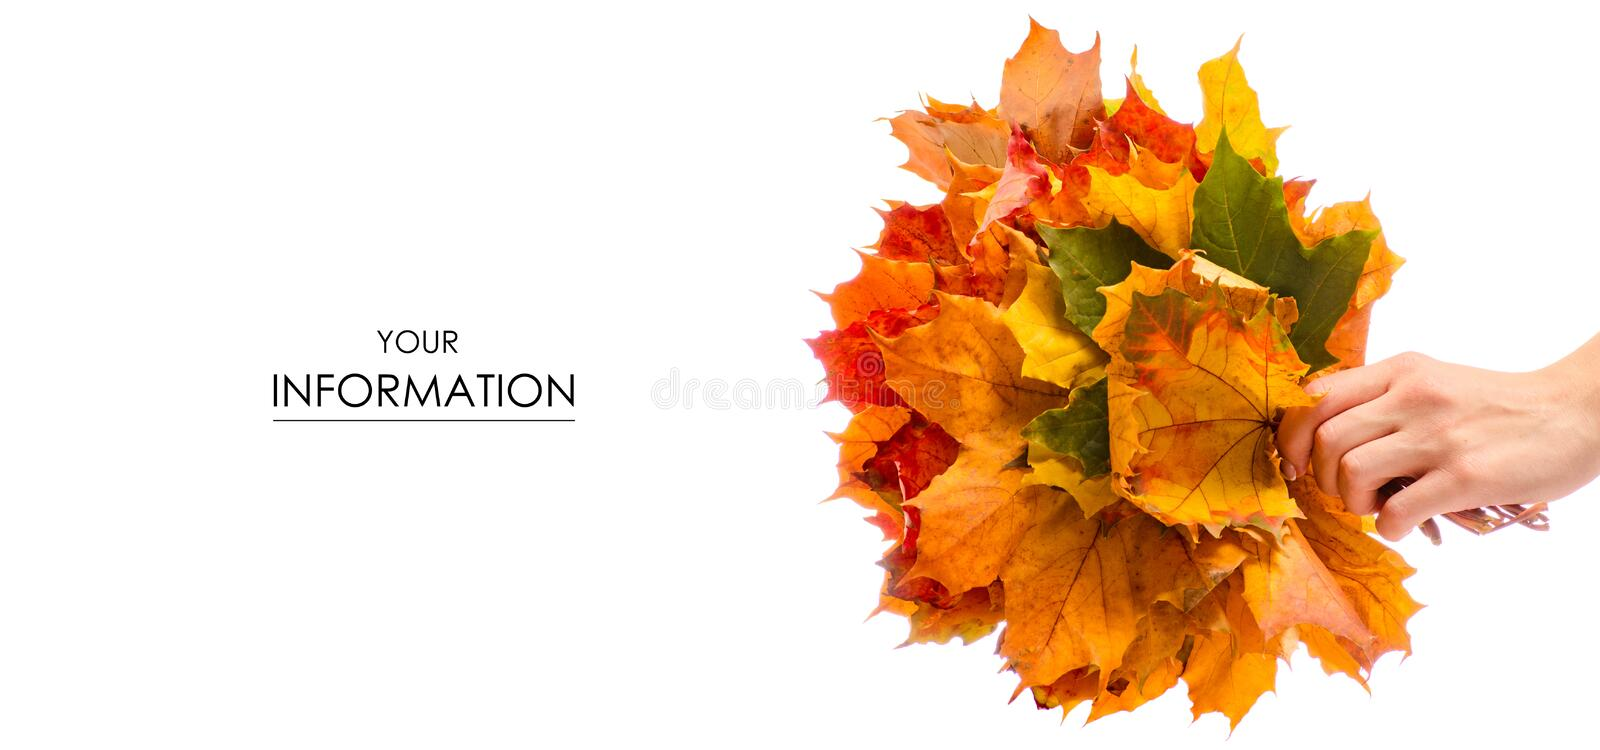 The autumn leaves in hand pattern stock photo